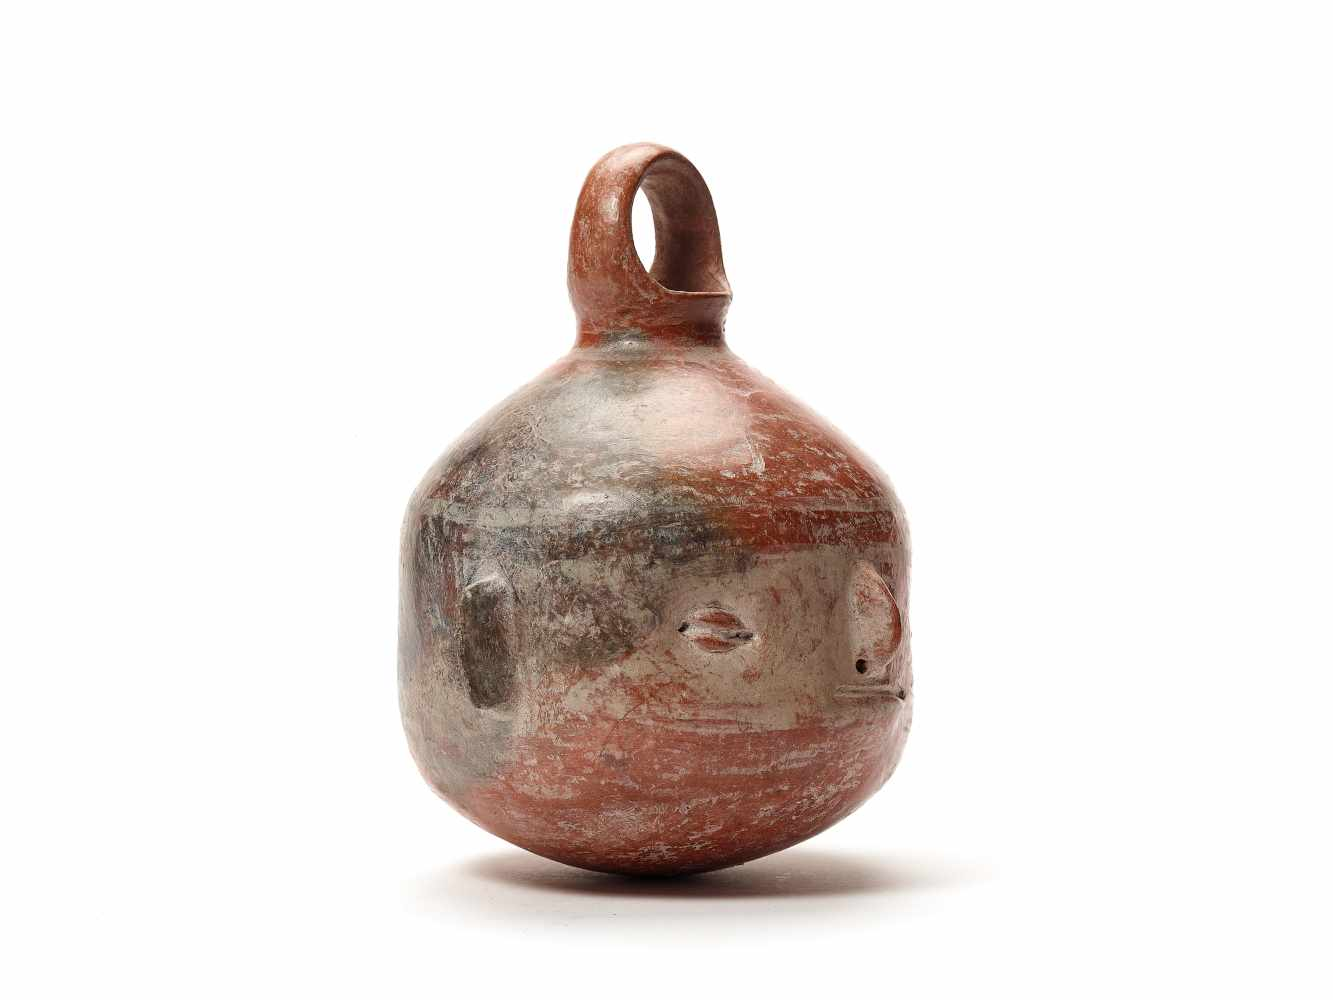 TL-TESTED HEAD-SHAPED VESSEL - VICUS CULTURE, PERU, C. 1st CENTURY BCFired clayVicus culture, - Image 4 of 4